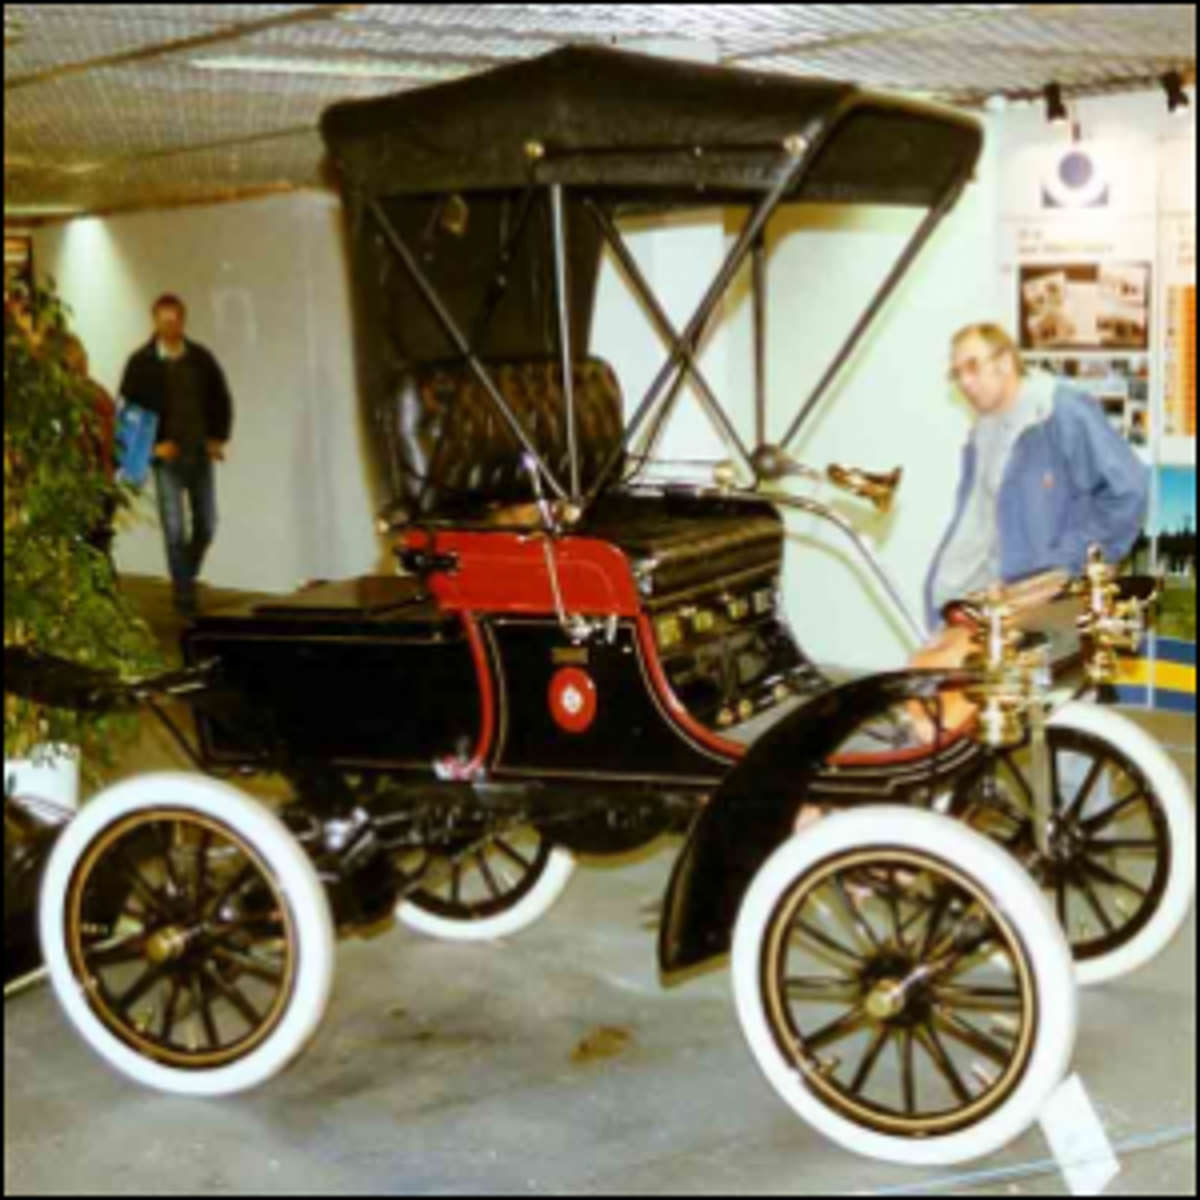 A 1904 Oldsmobile Model 6C Curved Dash Runabout with its top up.